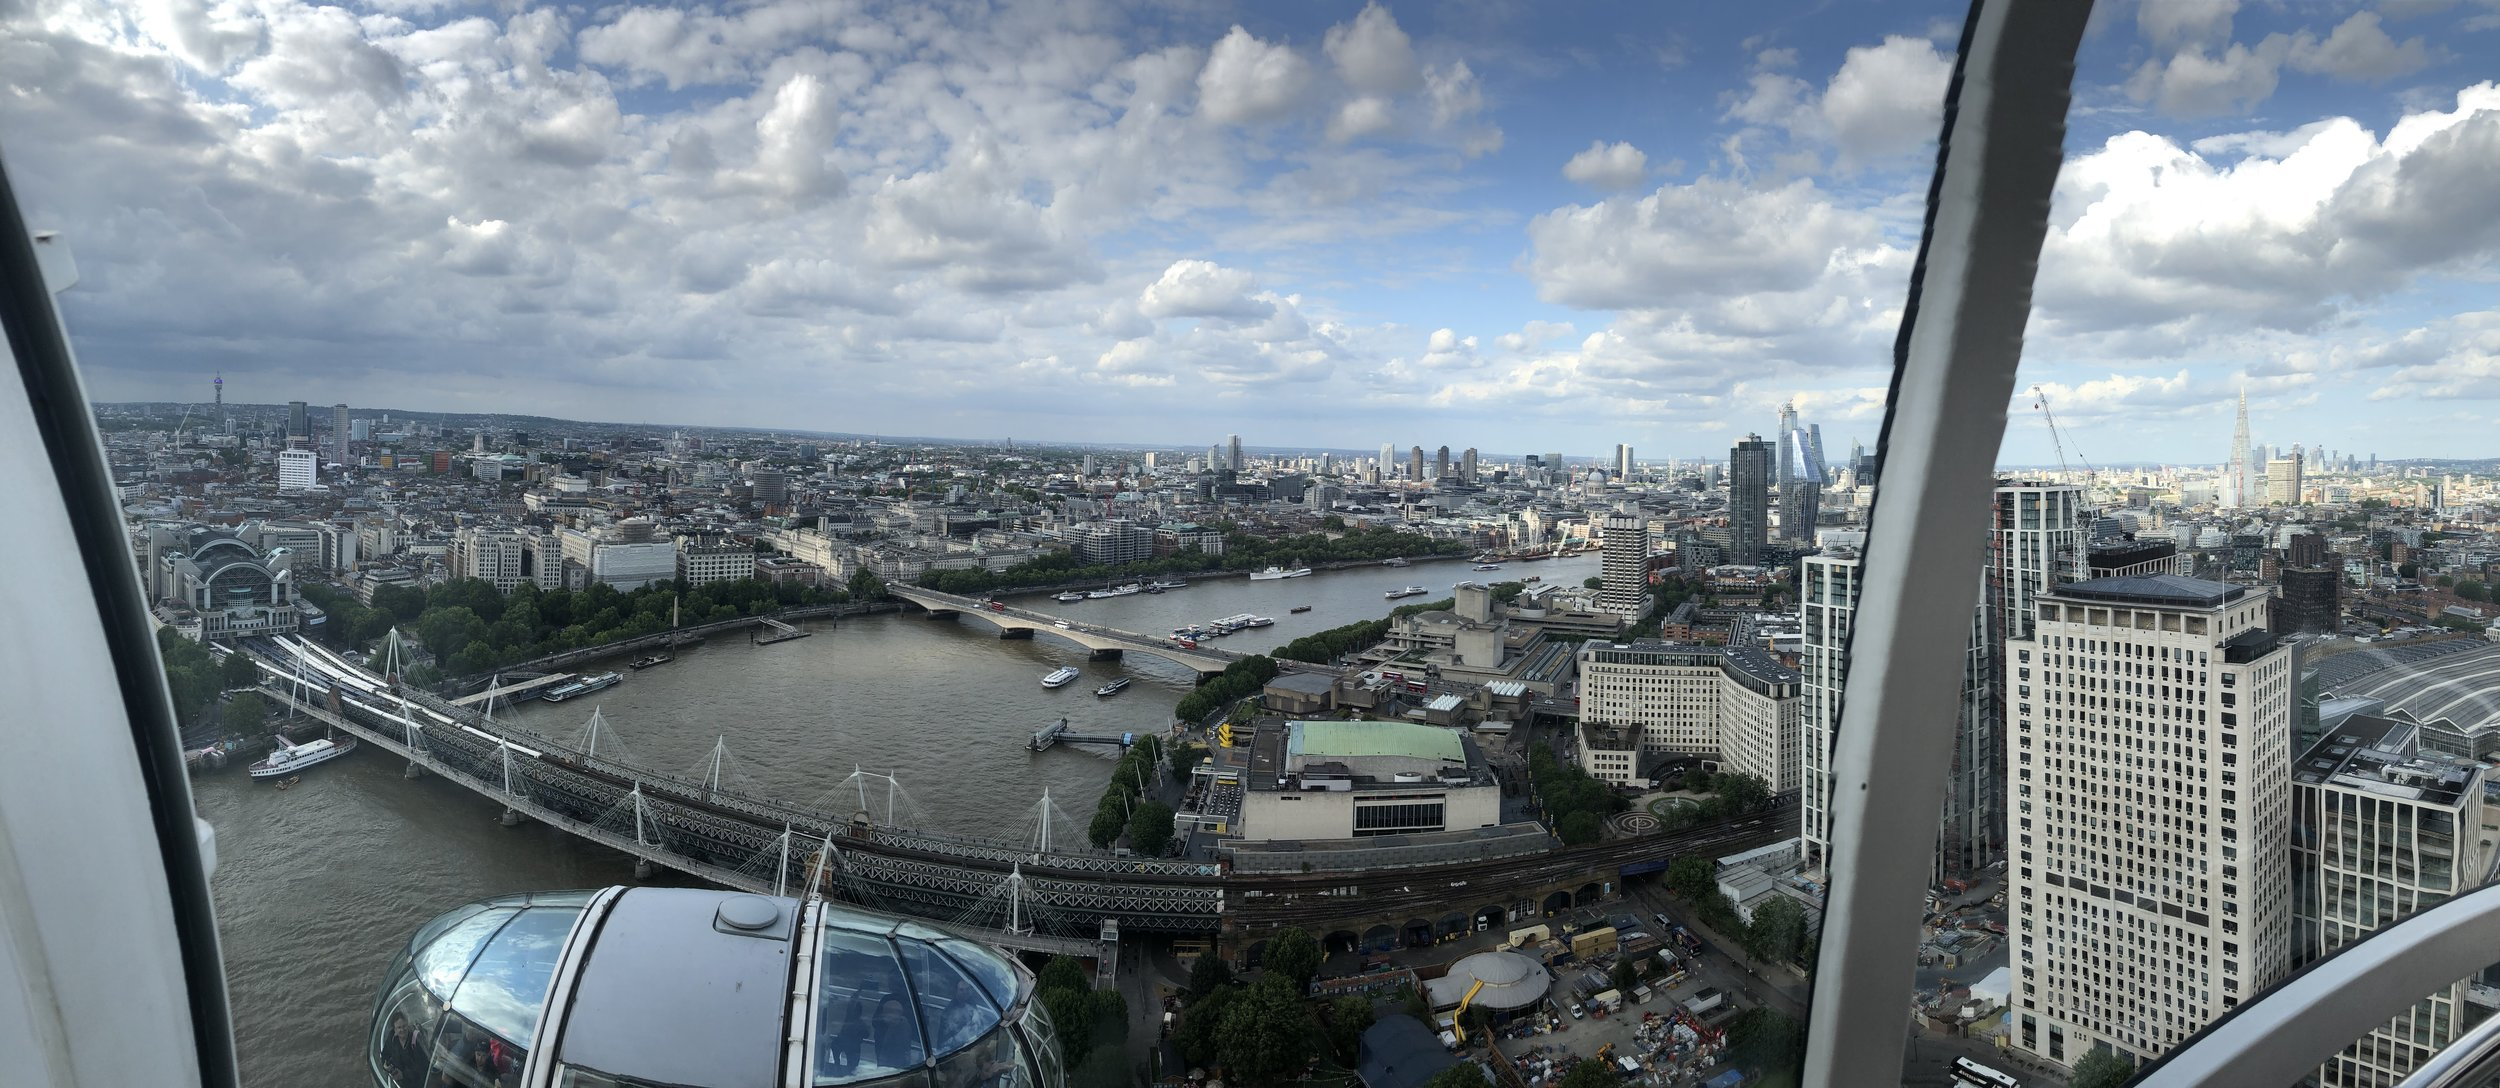 A panoramic shot from the London Eye.